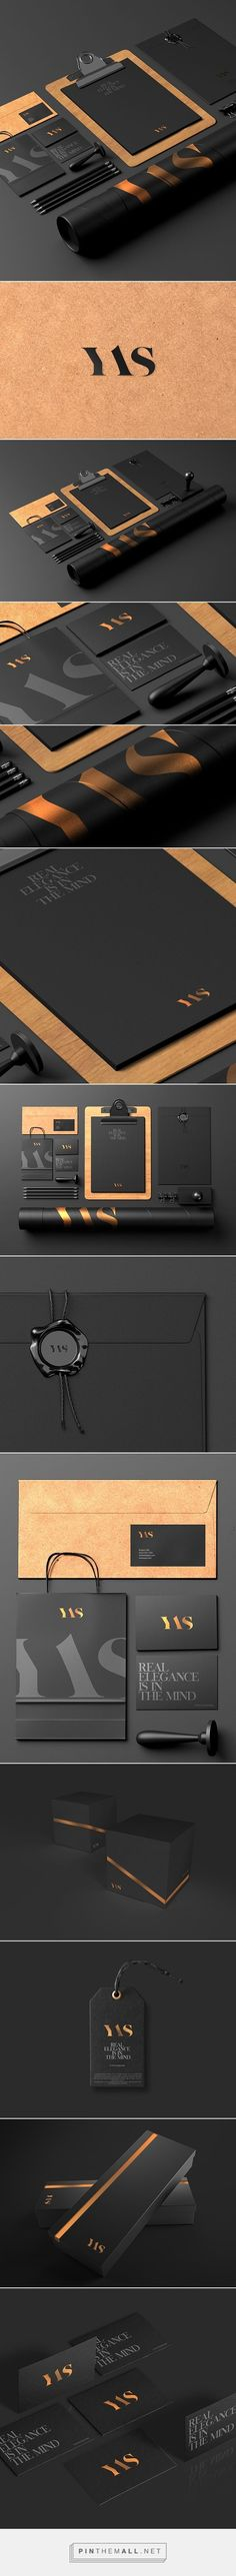 YAS - accessories for men on Behance by Sebastian Bednarek